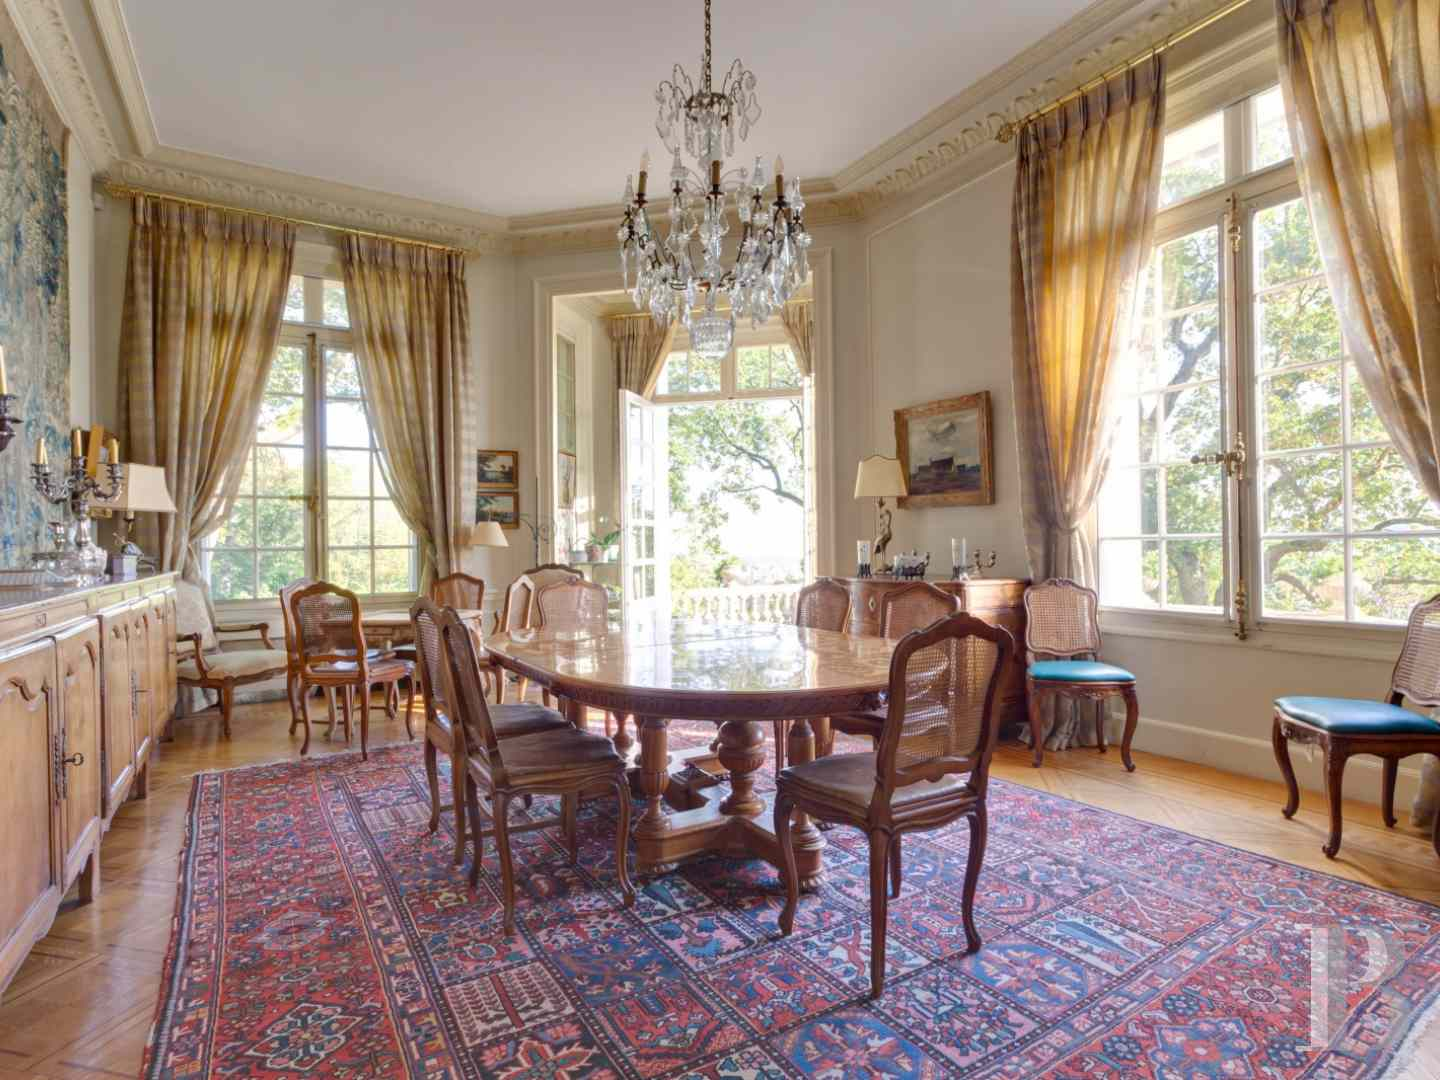 mansion houses for sale paris mansion houses - 7 zoom